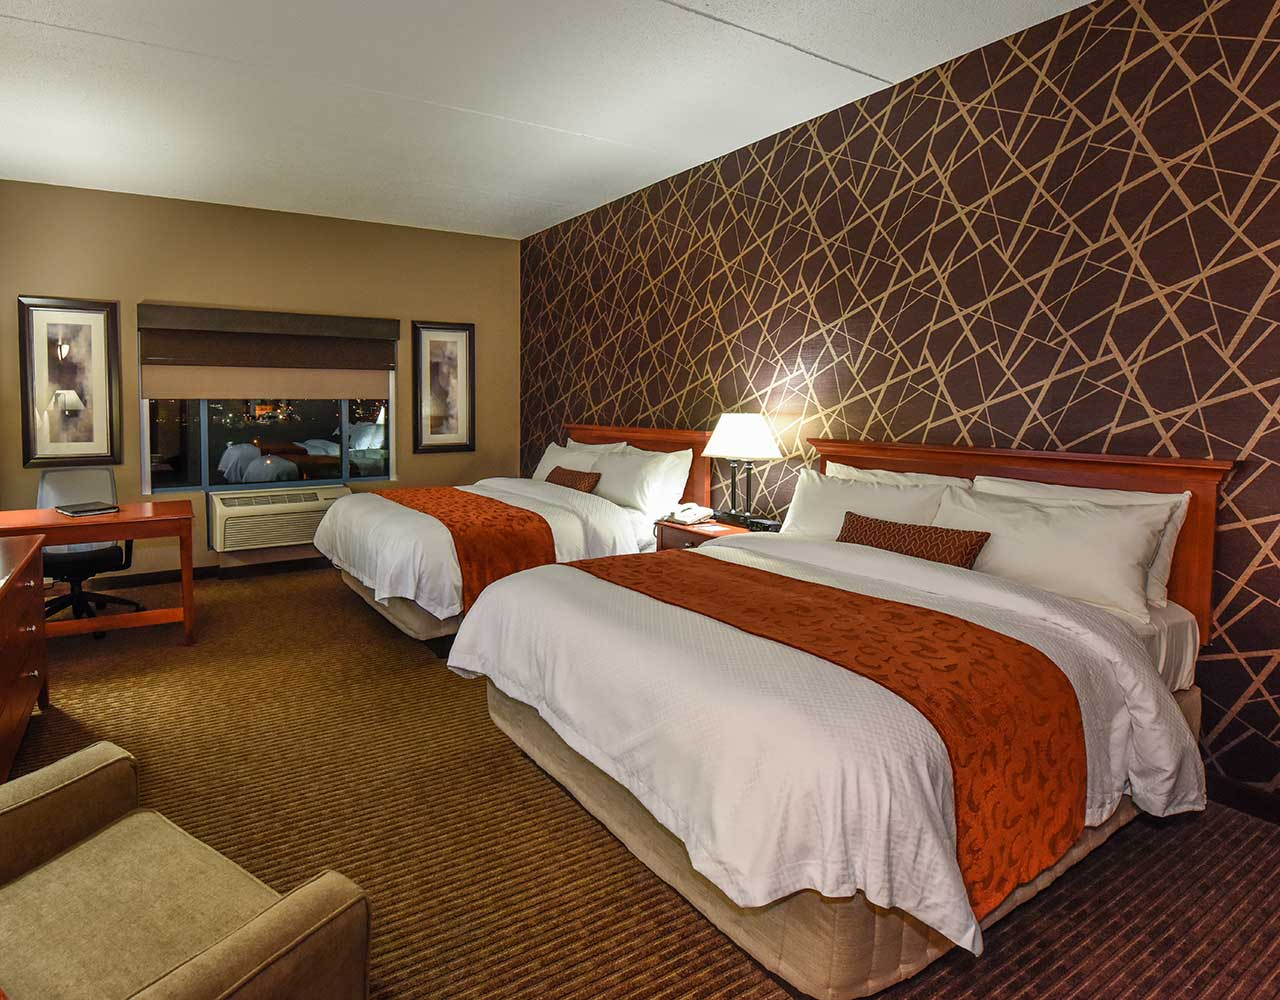 Deluxe Hotel Room With 2 Queen Beds